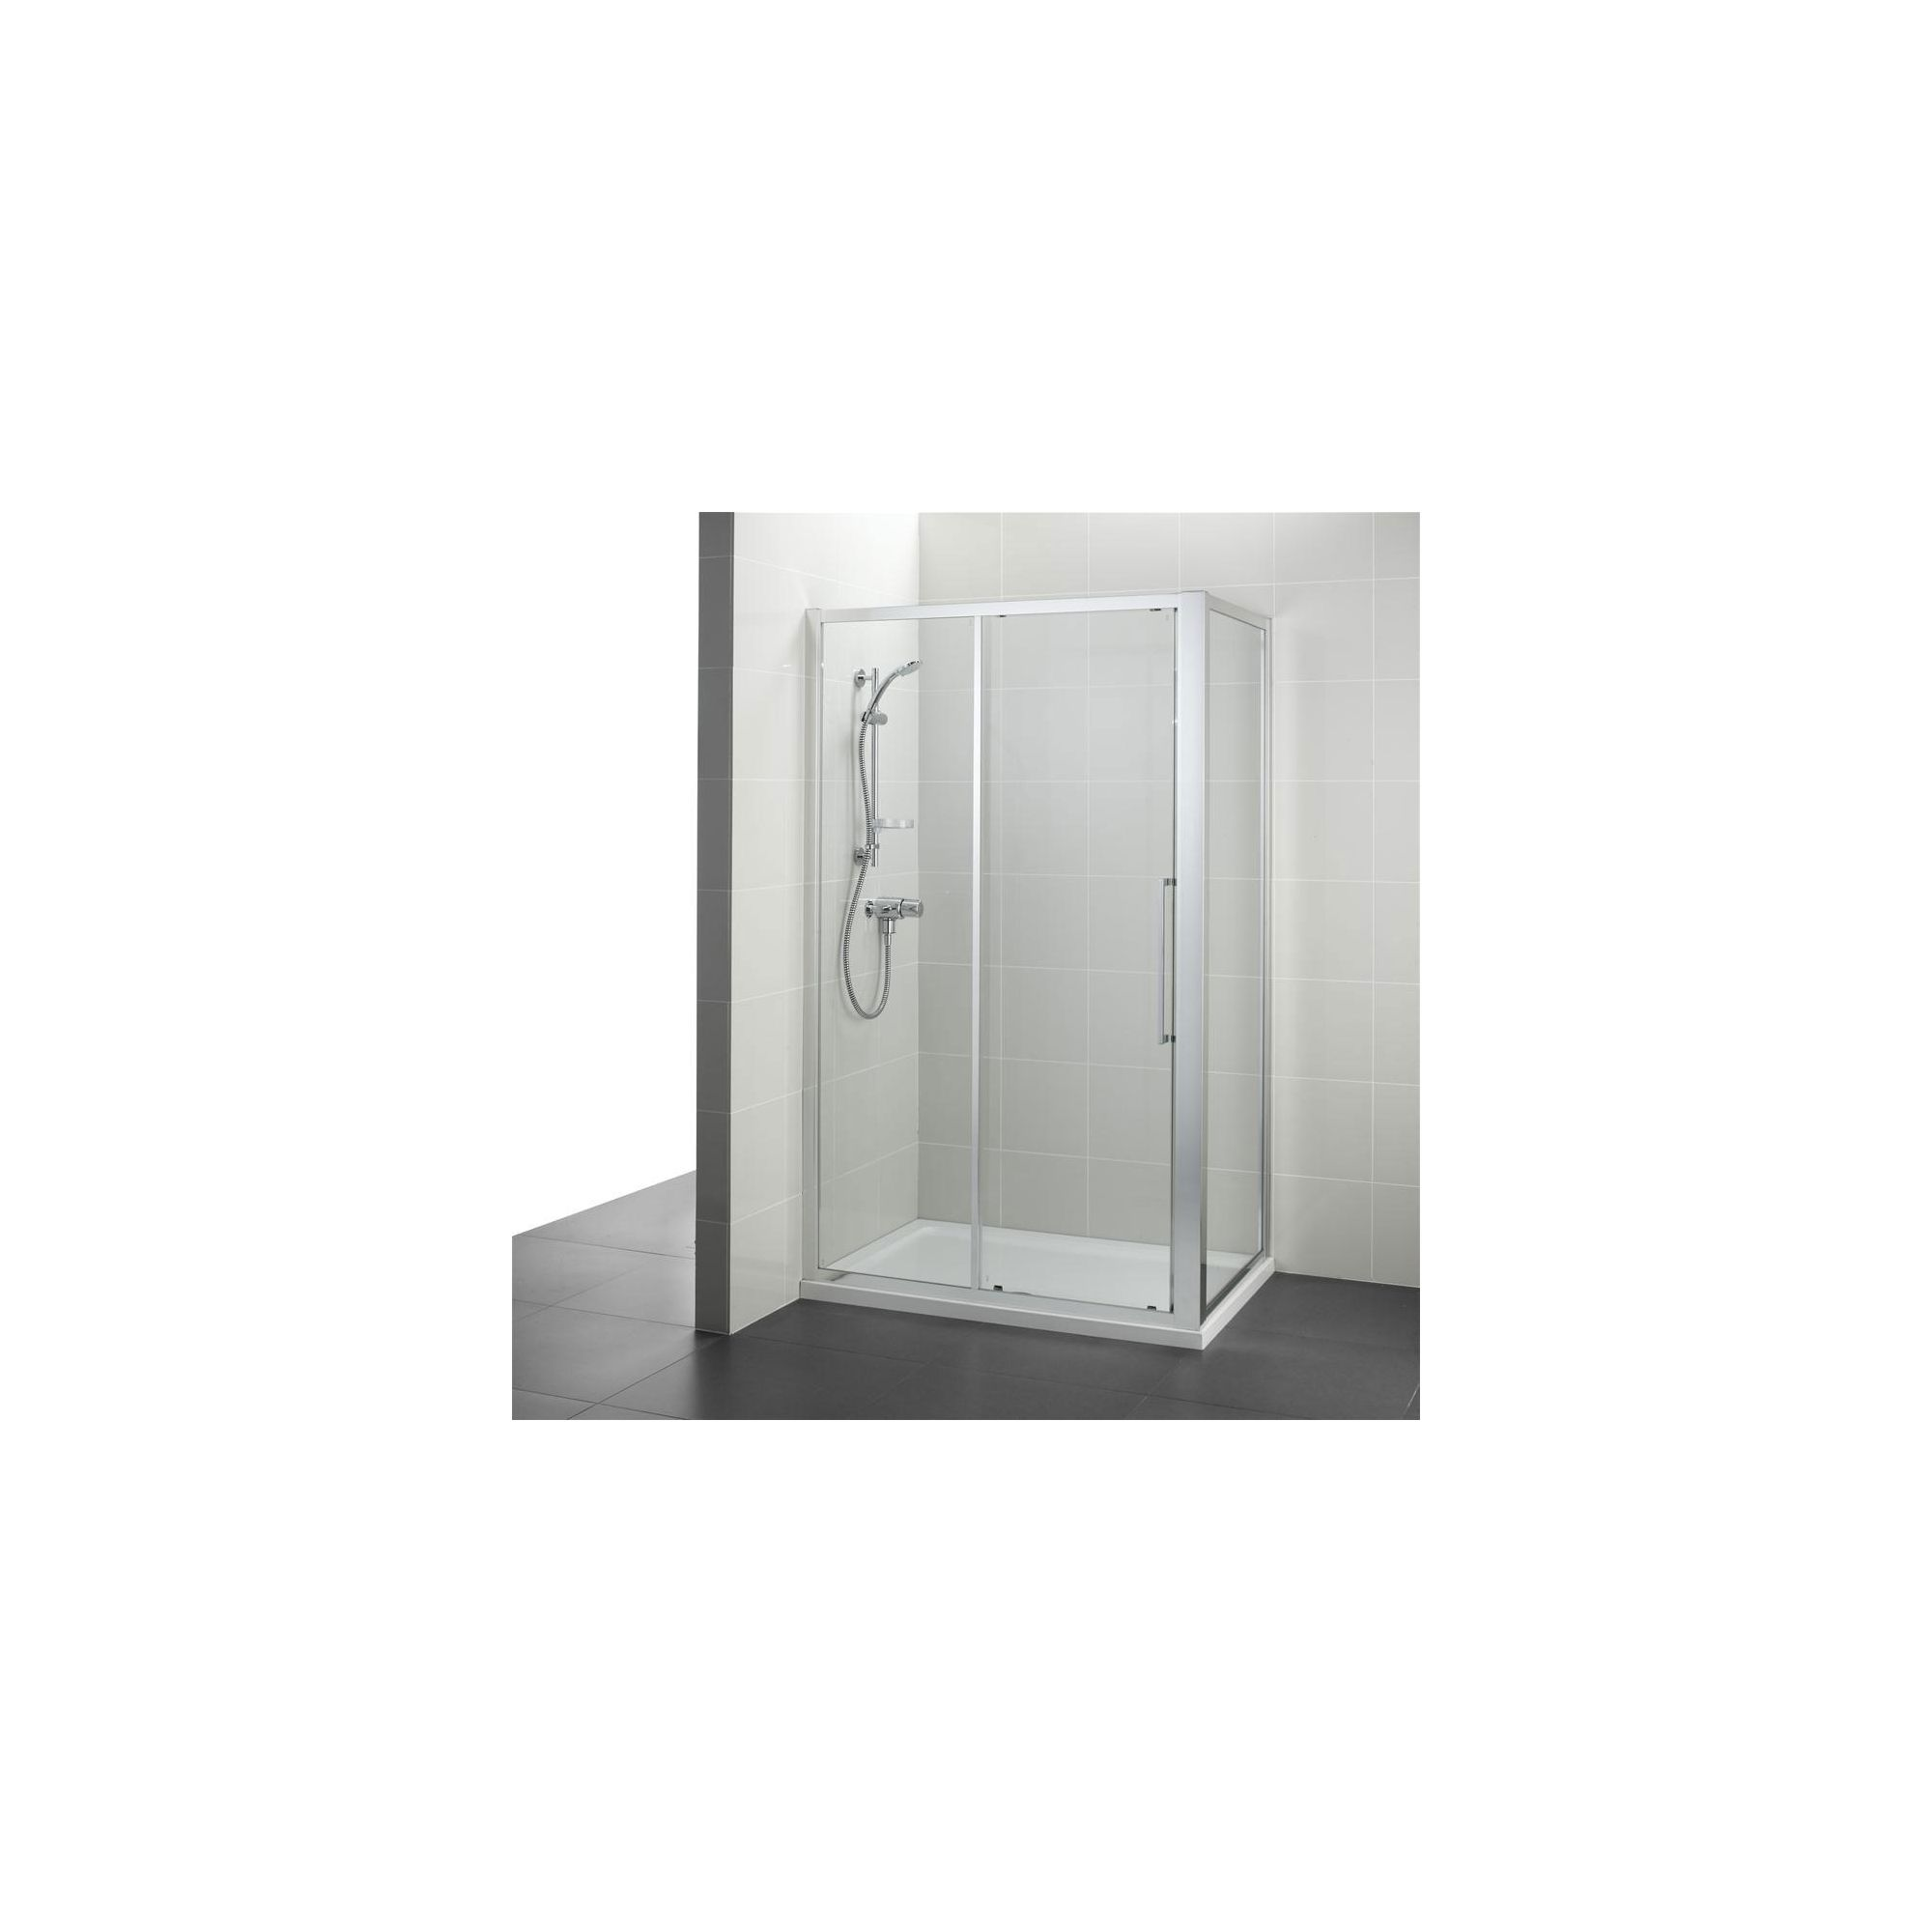 Ideal Standard Kubo Bi-Fold Door Shower Enclosure, 900mm x 900mm, Bright Silver Frame, Low Profile Tray at Tescos Direct